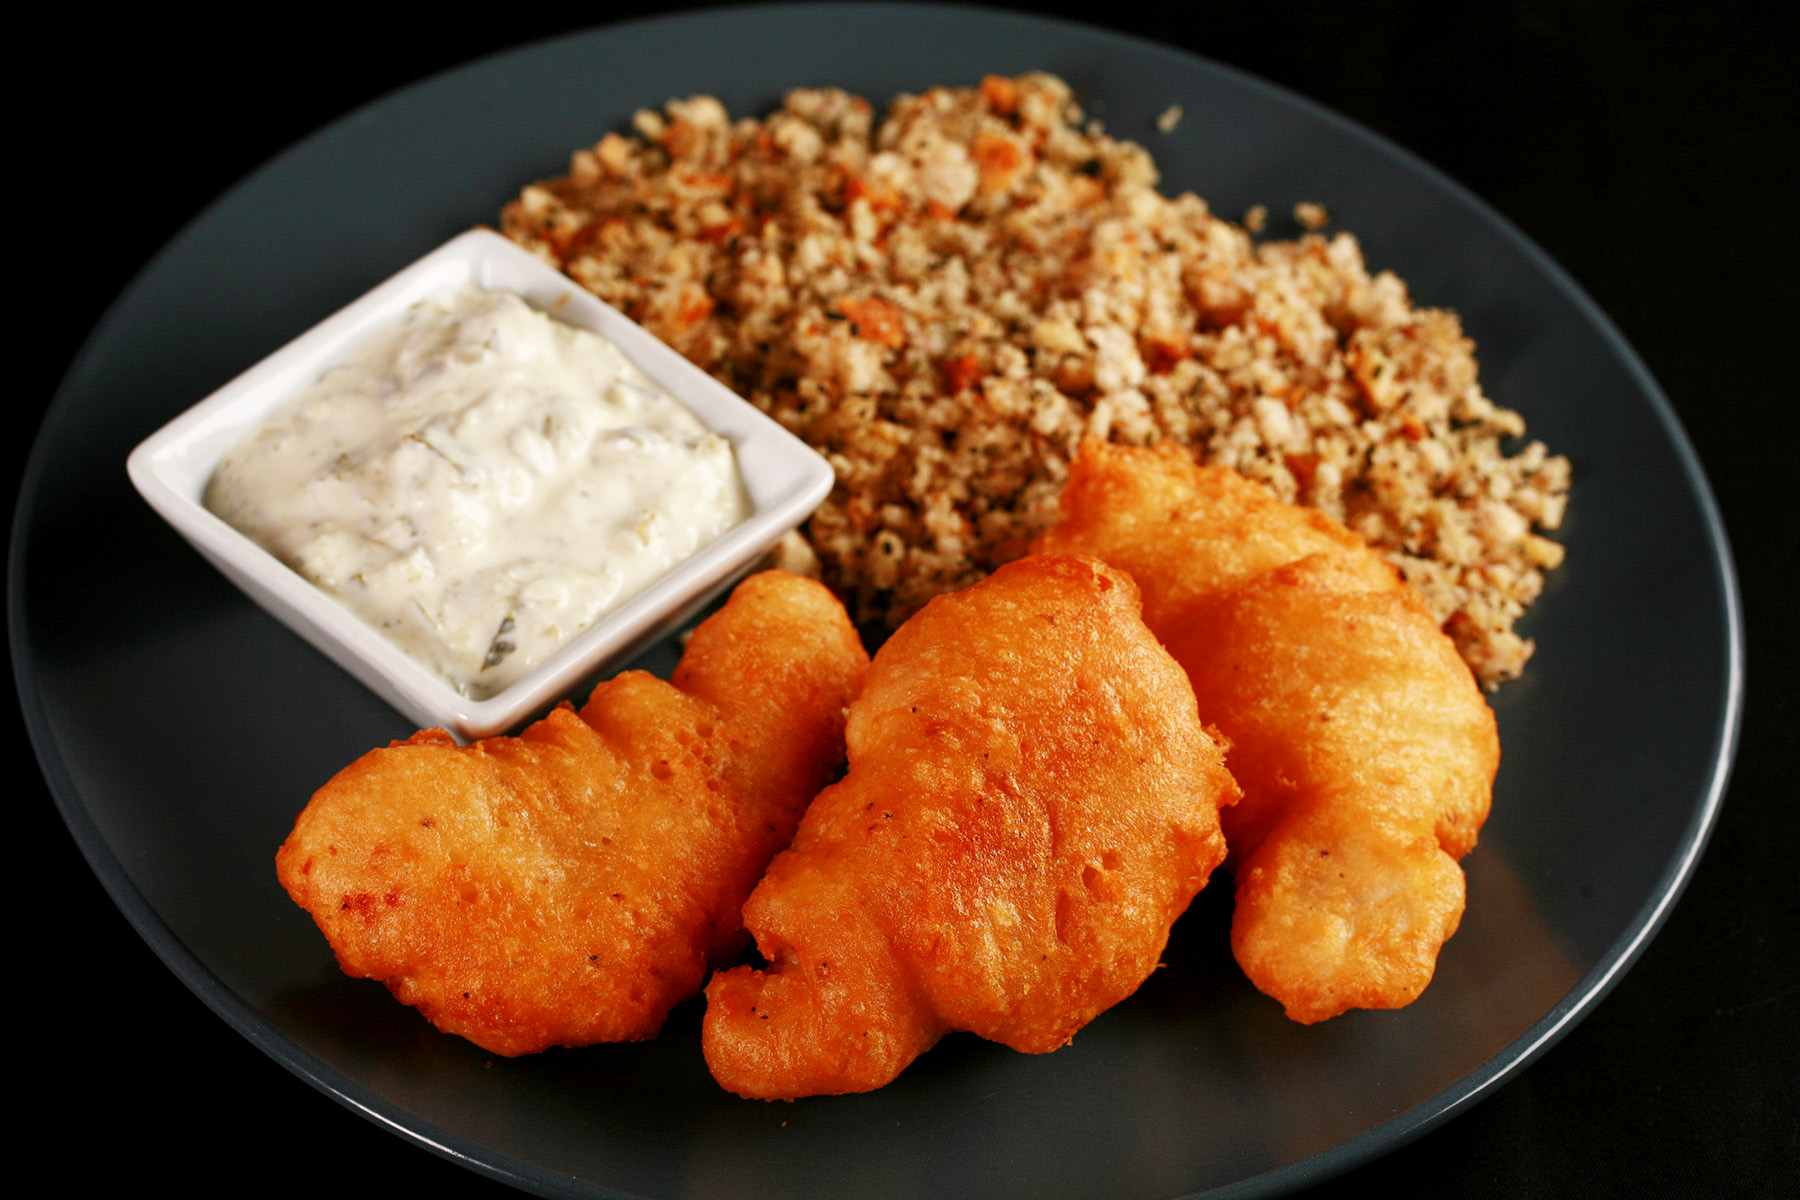 Gluten-Free Cod Cheeks and Dressing, on a round, blue plate. There is a small dish of tartar sauce on the plate, as well.